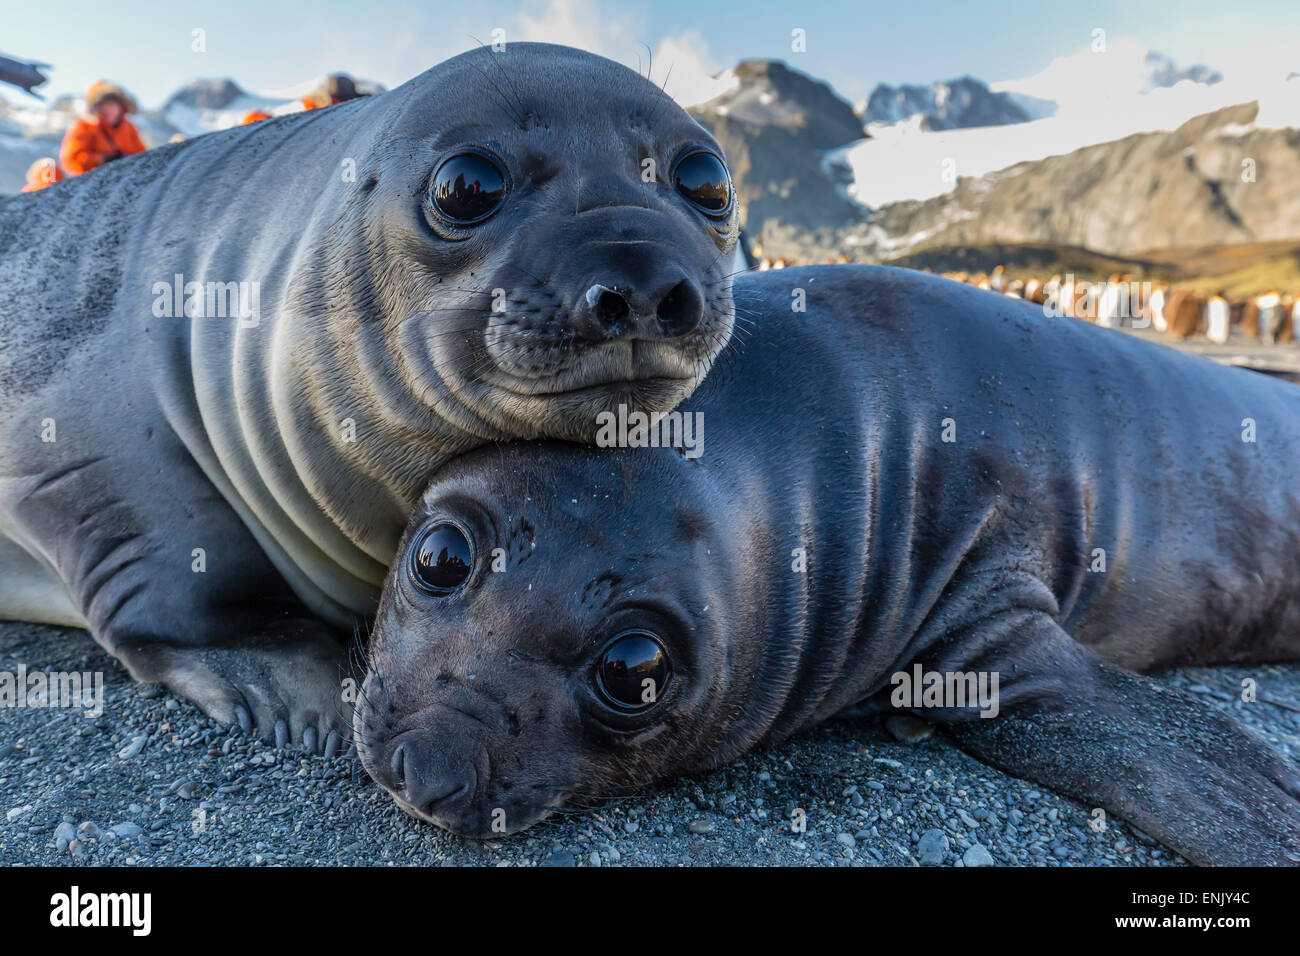 Southern elephant seal pups (Mirounga leonina), Gold Harbor, South Georgia, Polar Regions - Stock Image